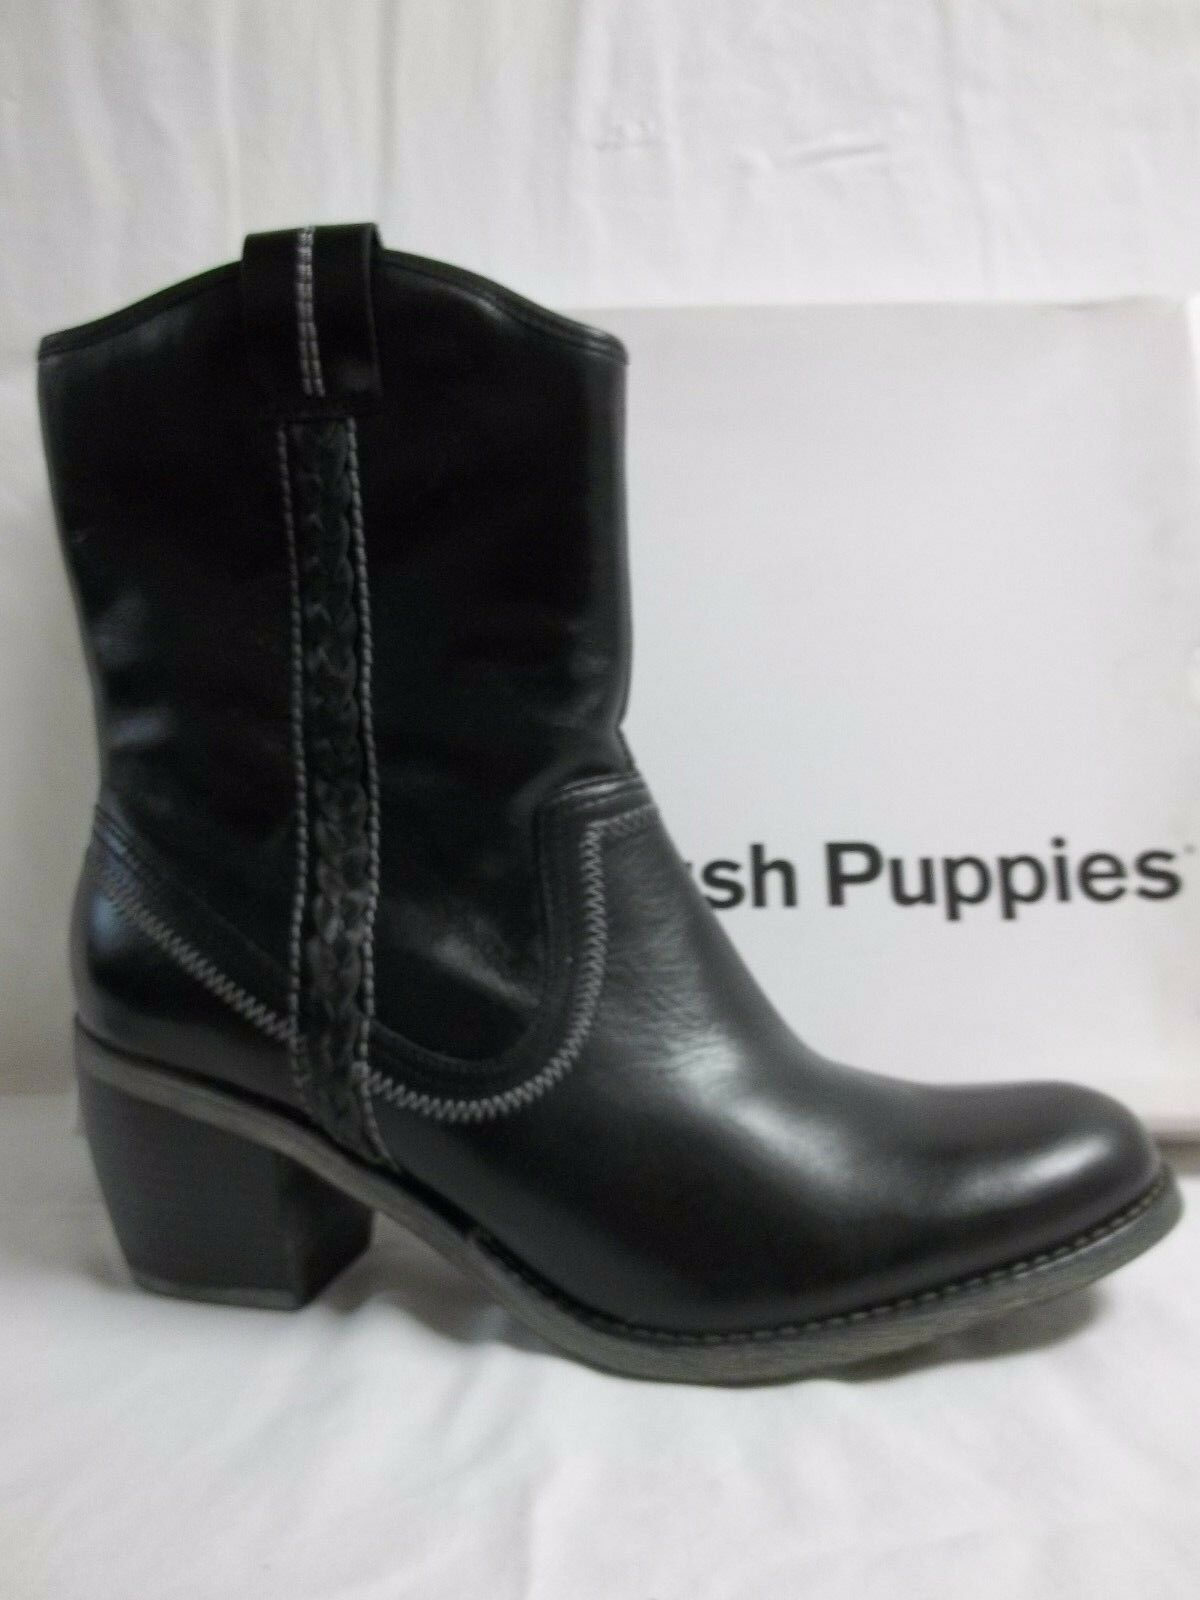 Hush Puppies Size 9.5 M Rustique Black Black Black Leather Ankle Boots New Womens shoes cb41c9